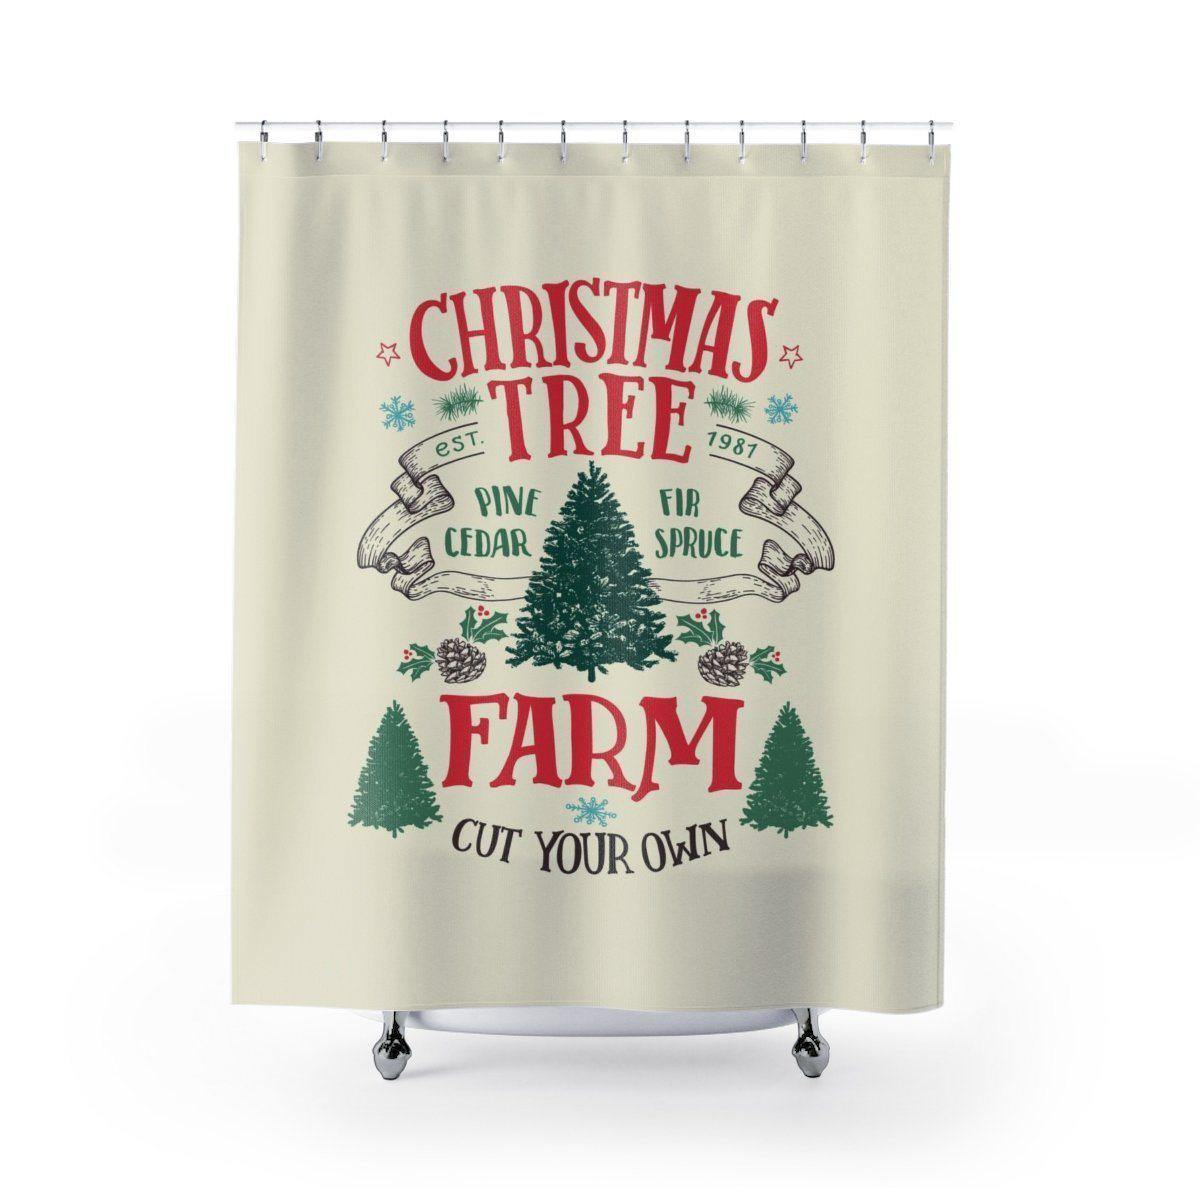 Christmas Tree Festive Shower Curtain-W.FRANCIS